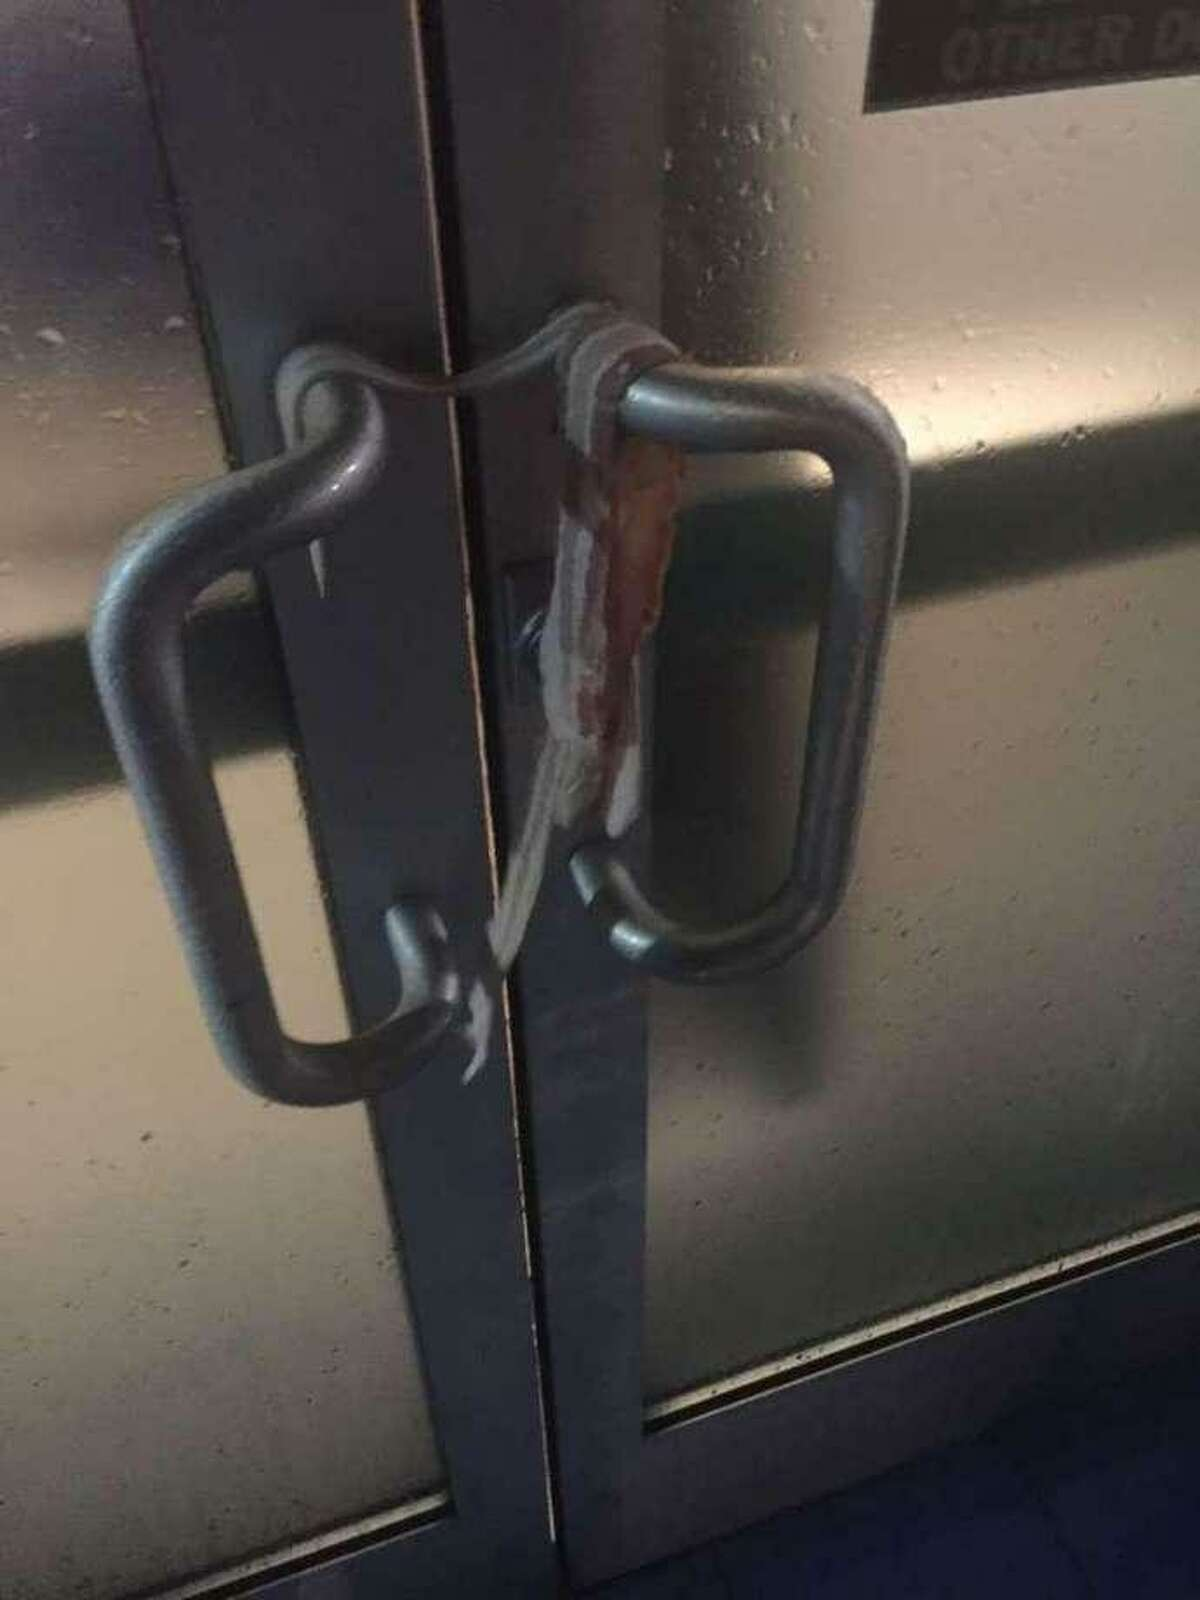 Bacon was wrapped around the door handle of the Islamic Center of Davis in January.